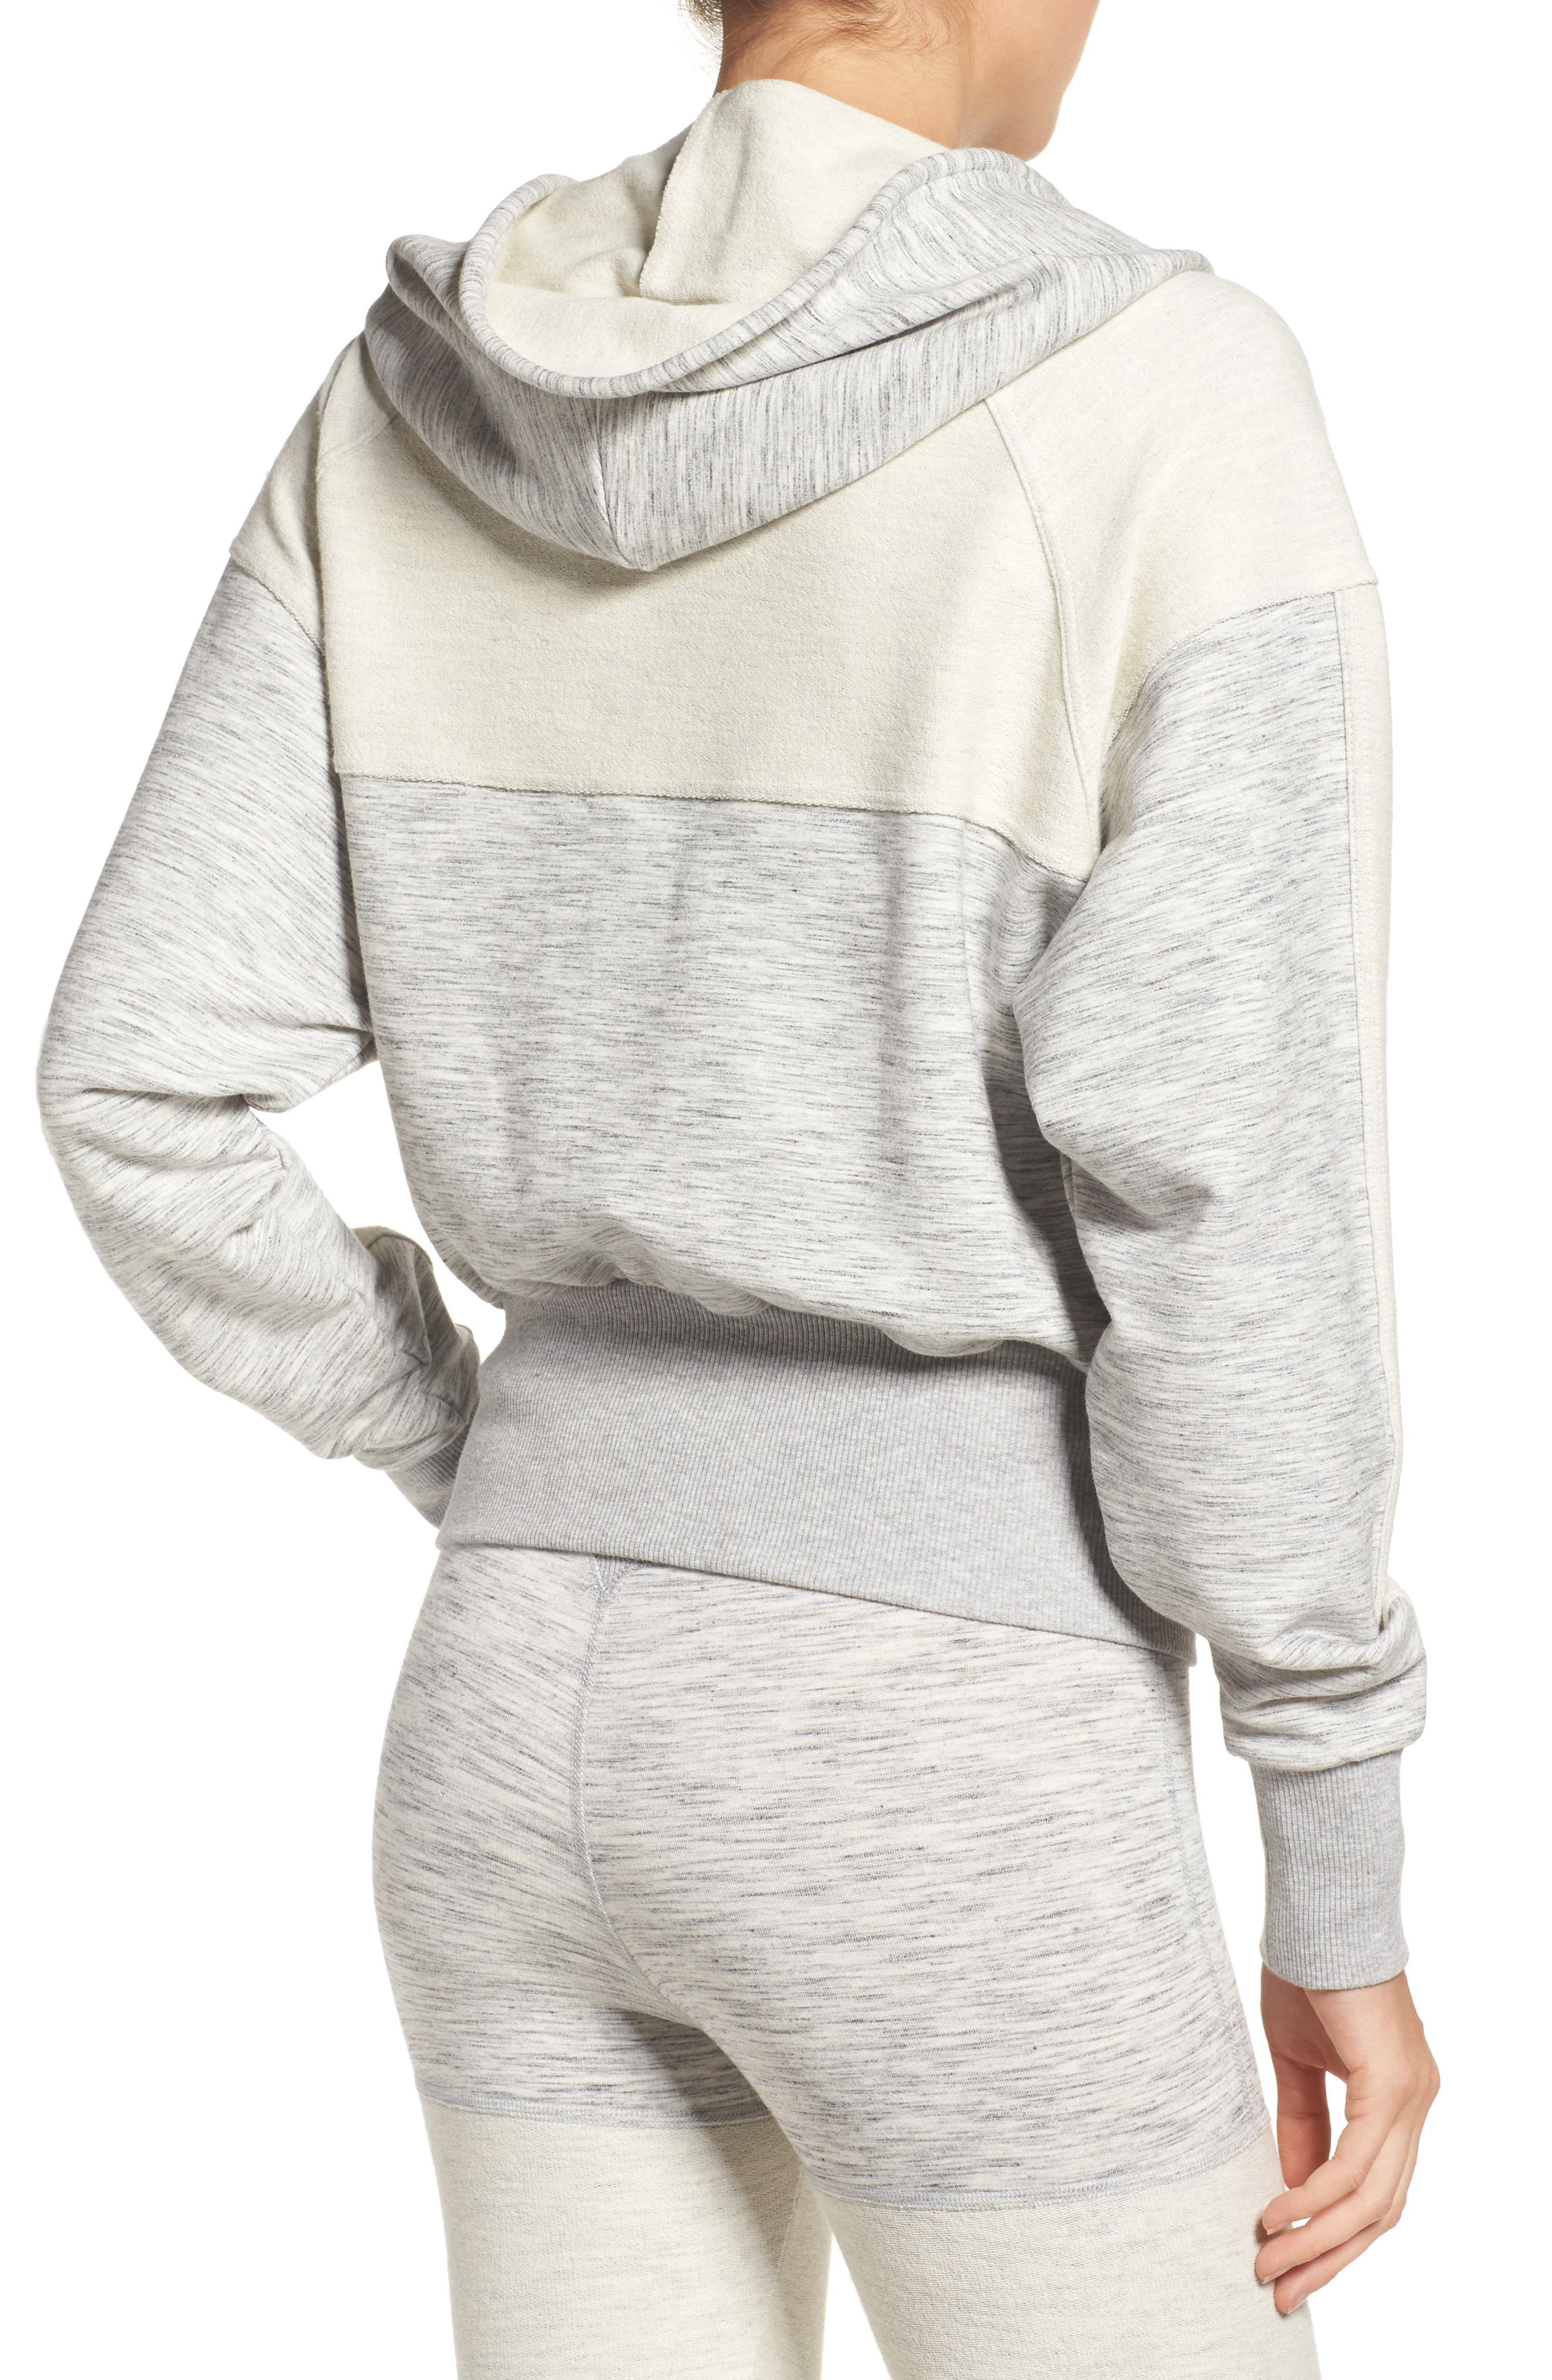 Shadowboxer Hoodie,                             Alternate thumbnail 2, color,                             GREY